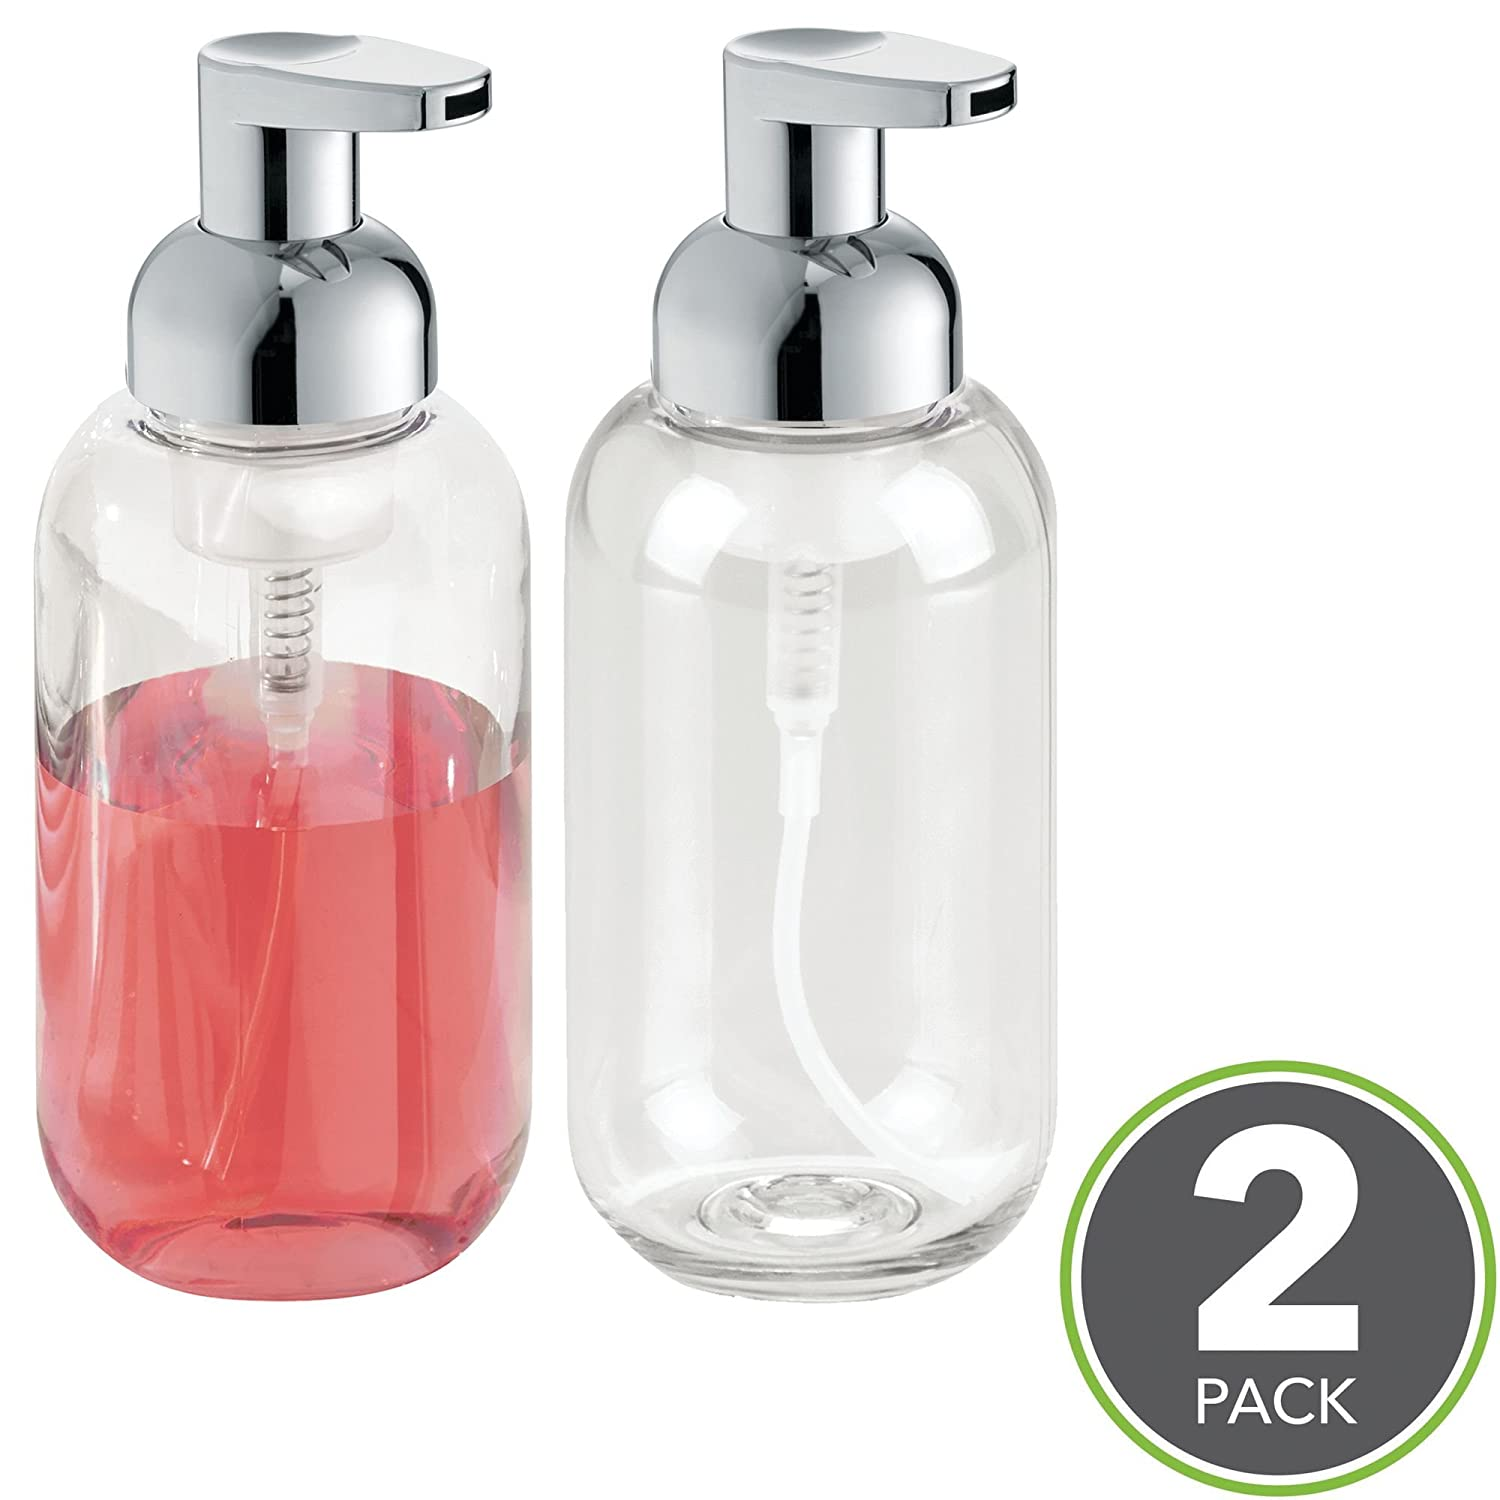 mDesign Foaming Soap Dispenser Pump Bottle for Bathroom Vanities or Kitchen Sink, Countertops - Pack of 2, Clear/Chrome MetroDecor 3840MDK